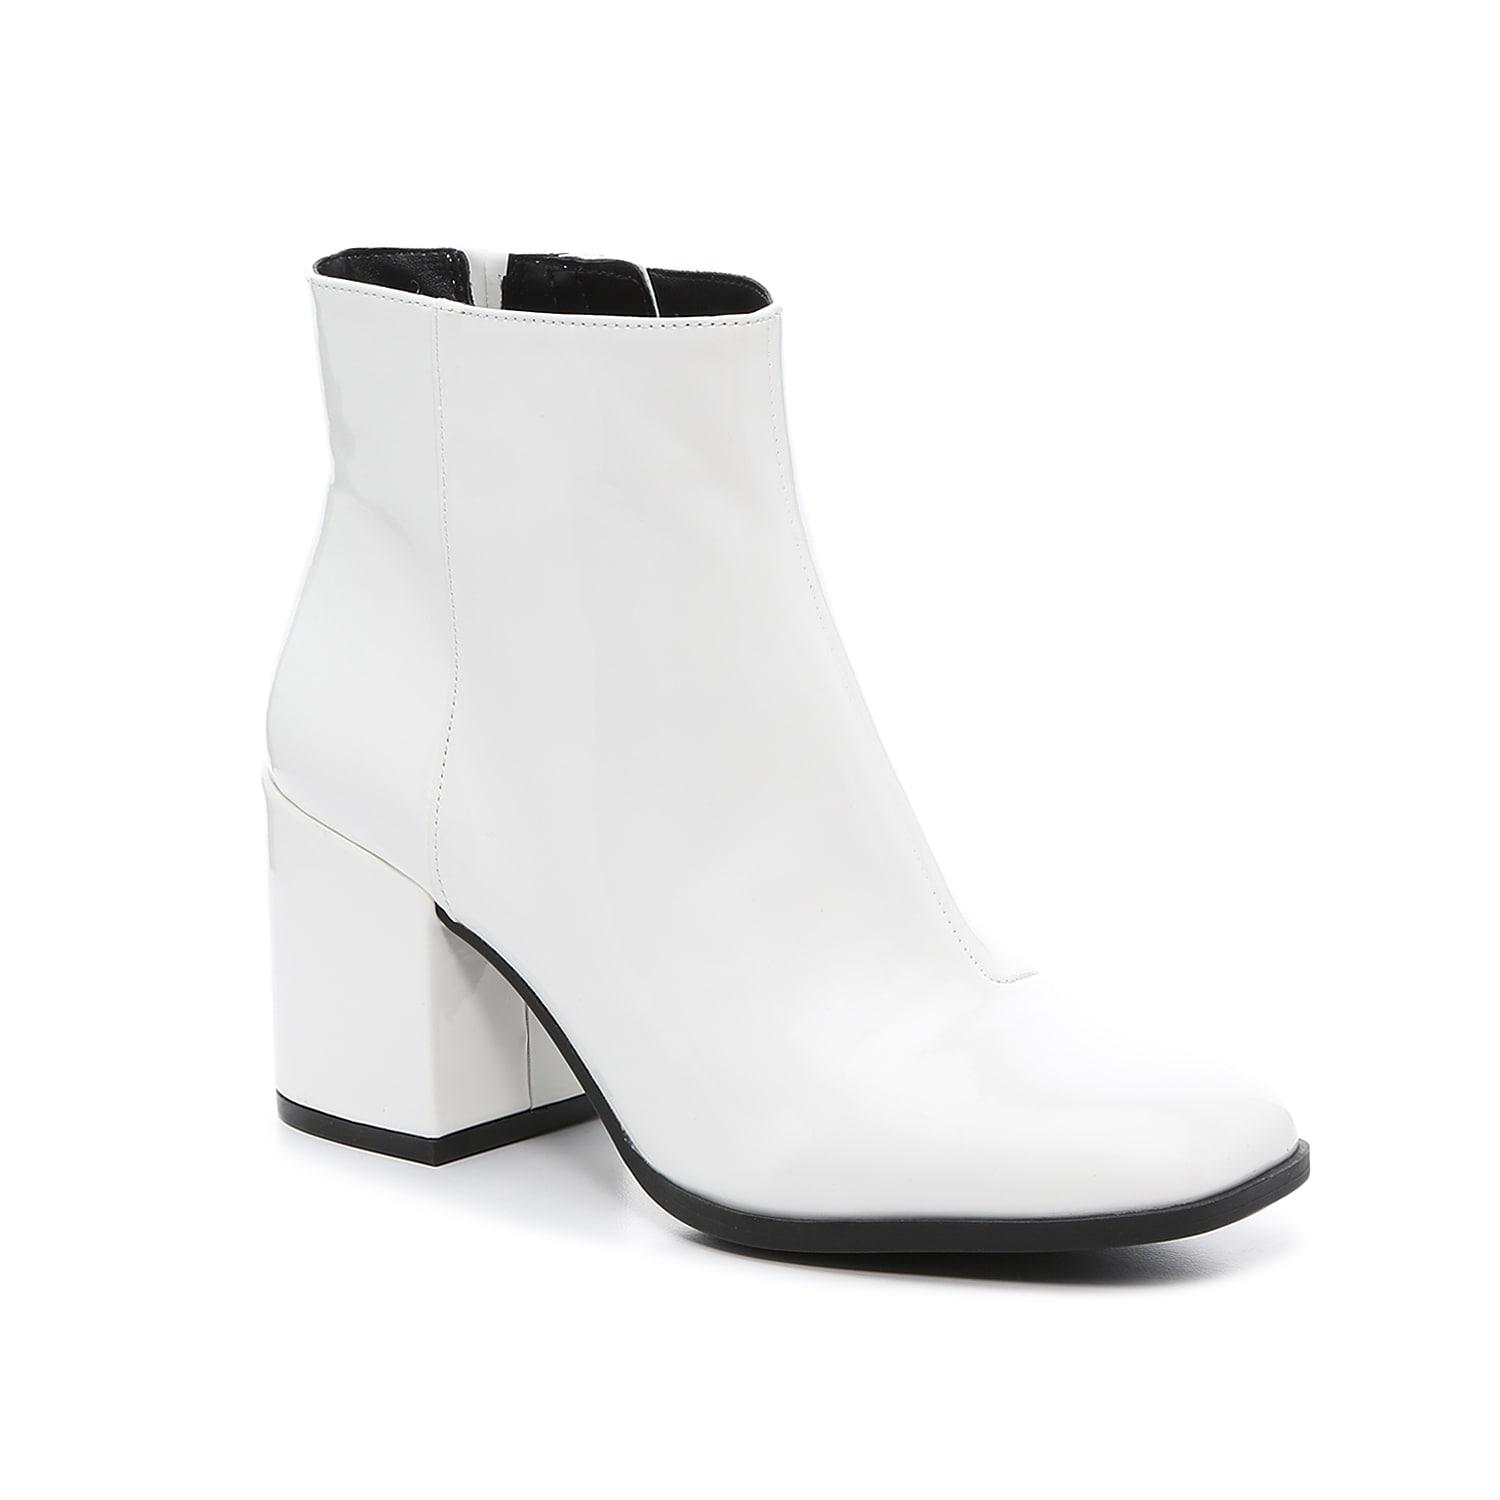 The Benisa bootie from Mix No. 6 rocks a classic design that pairs with any outfit. The squared off toe and chunky block heel add a modern finish to this ankle boot. Click here for Boot Measuring Guide.